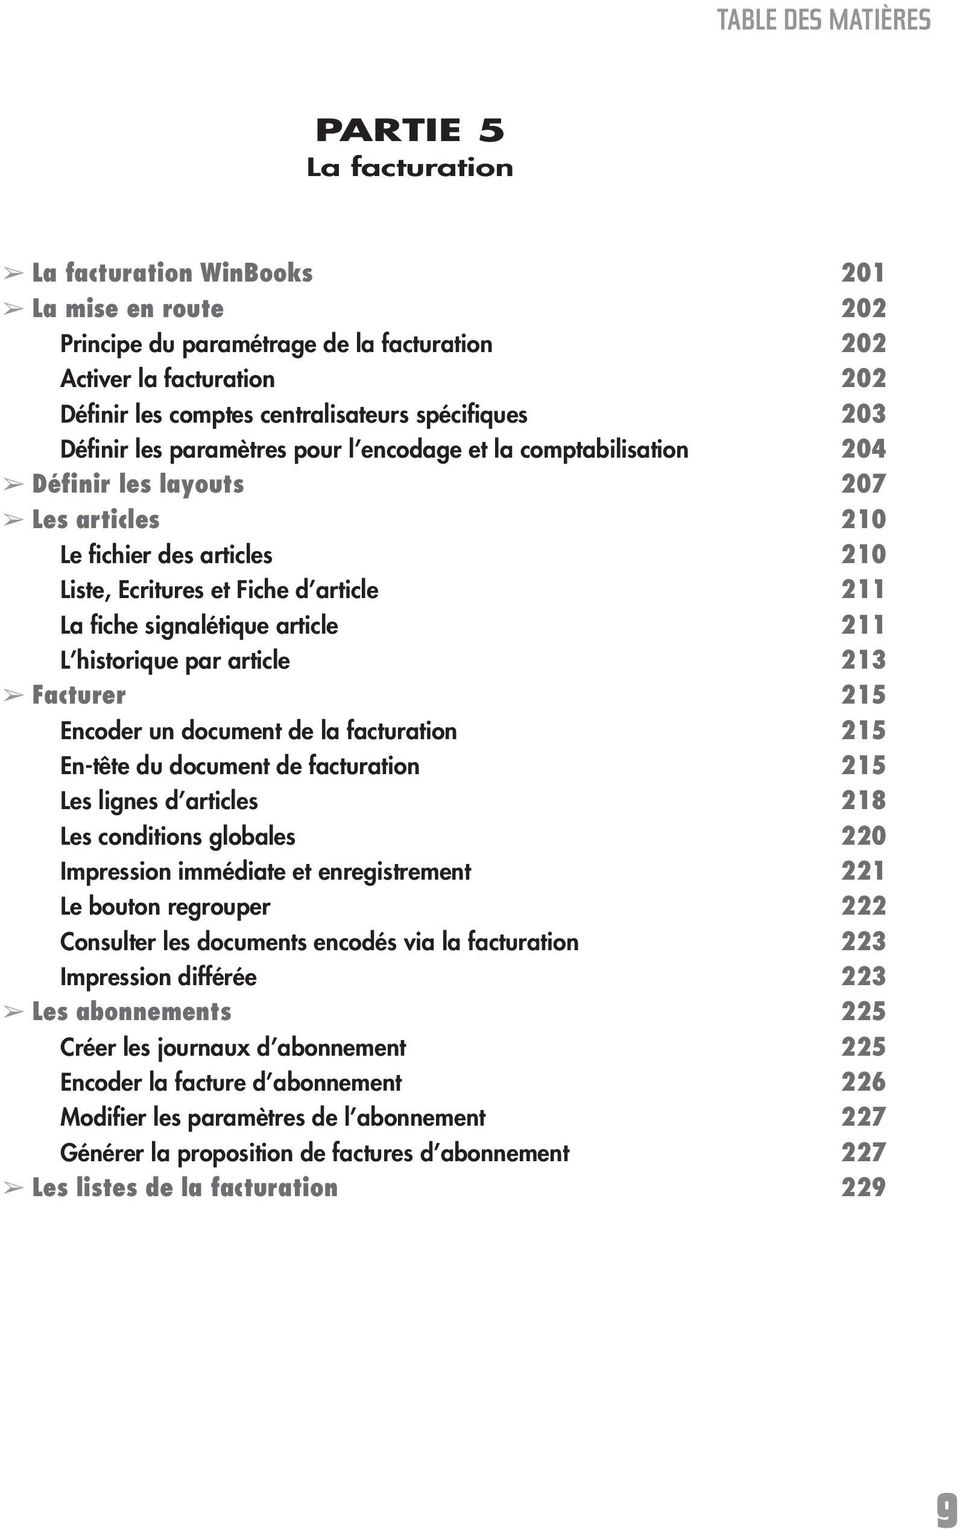 article 211 La fiche signalétique article 211 L historique par article 213 Facturer 215 Encoder un document de la facturation 215 En-tête du document de facturation 215 Les lignes d articles 218 Les